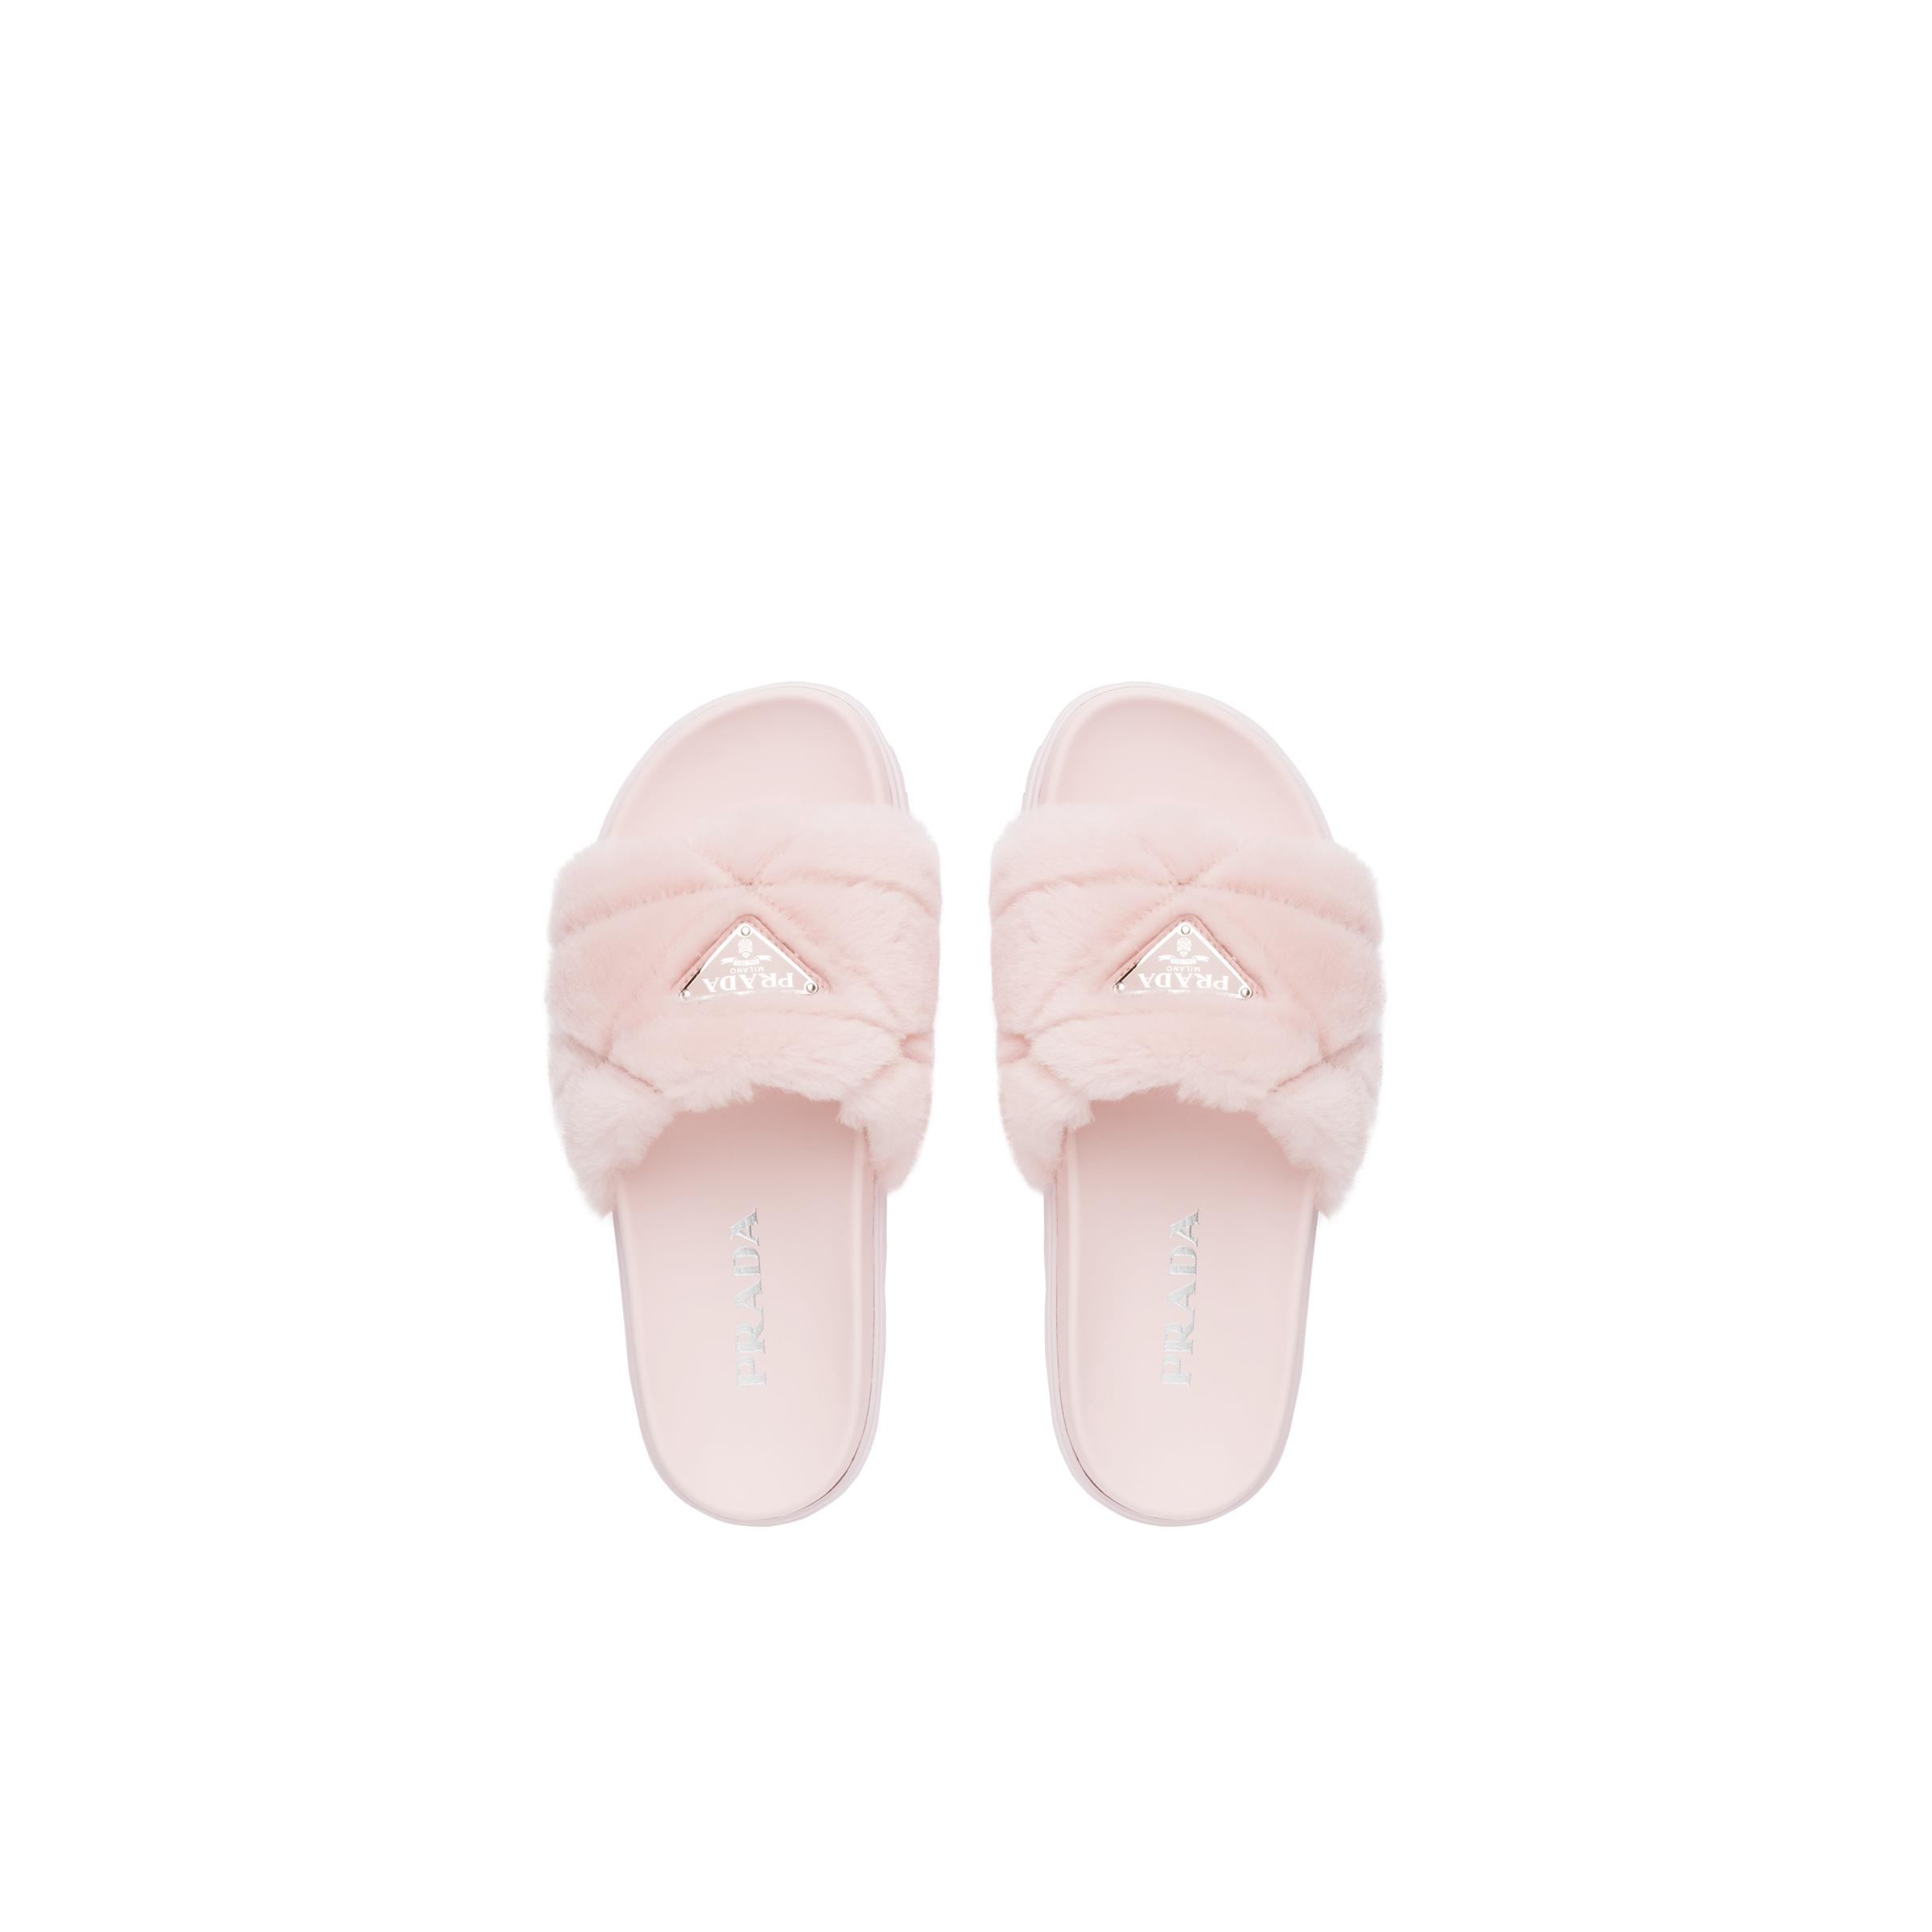 Shearling Slides Women Orchid Pink 1